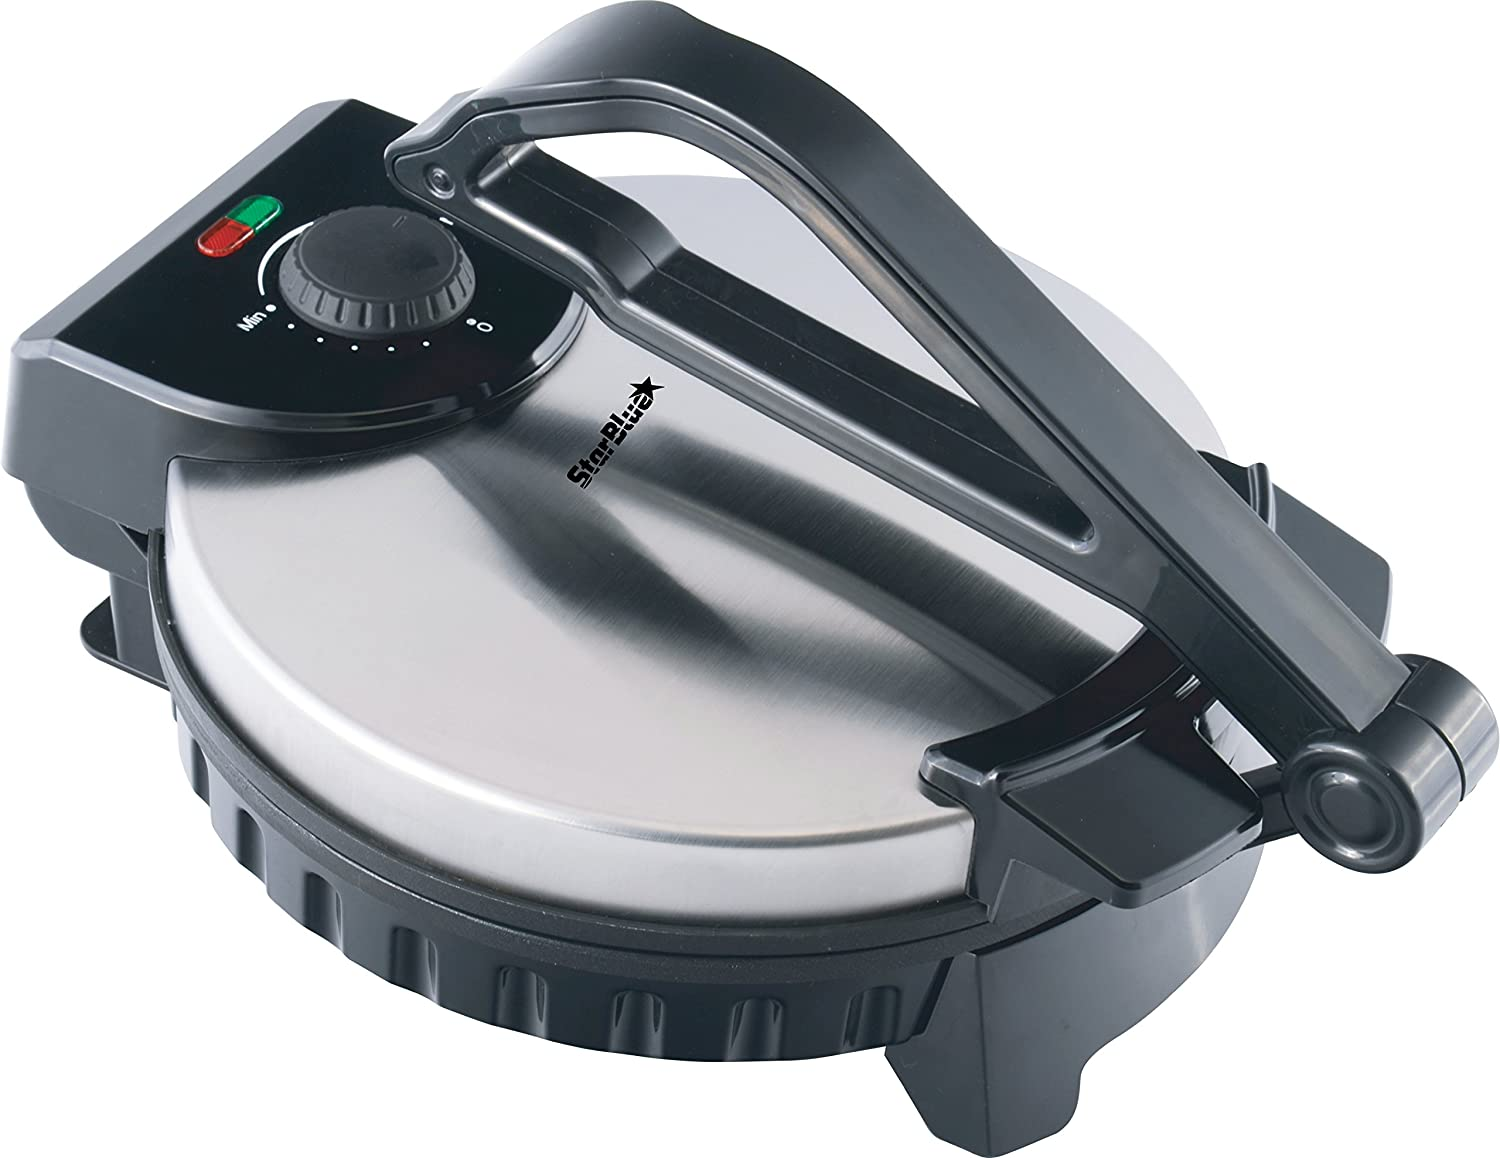 10inch Chapati Maker - The automatic Stainless Steel Non-Stick Electric machine